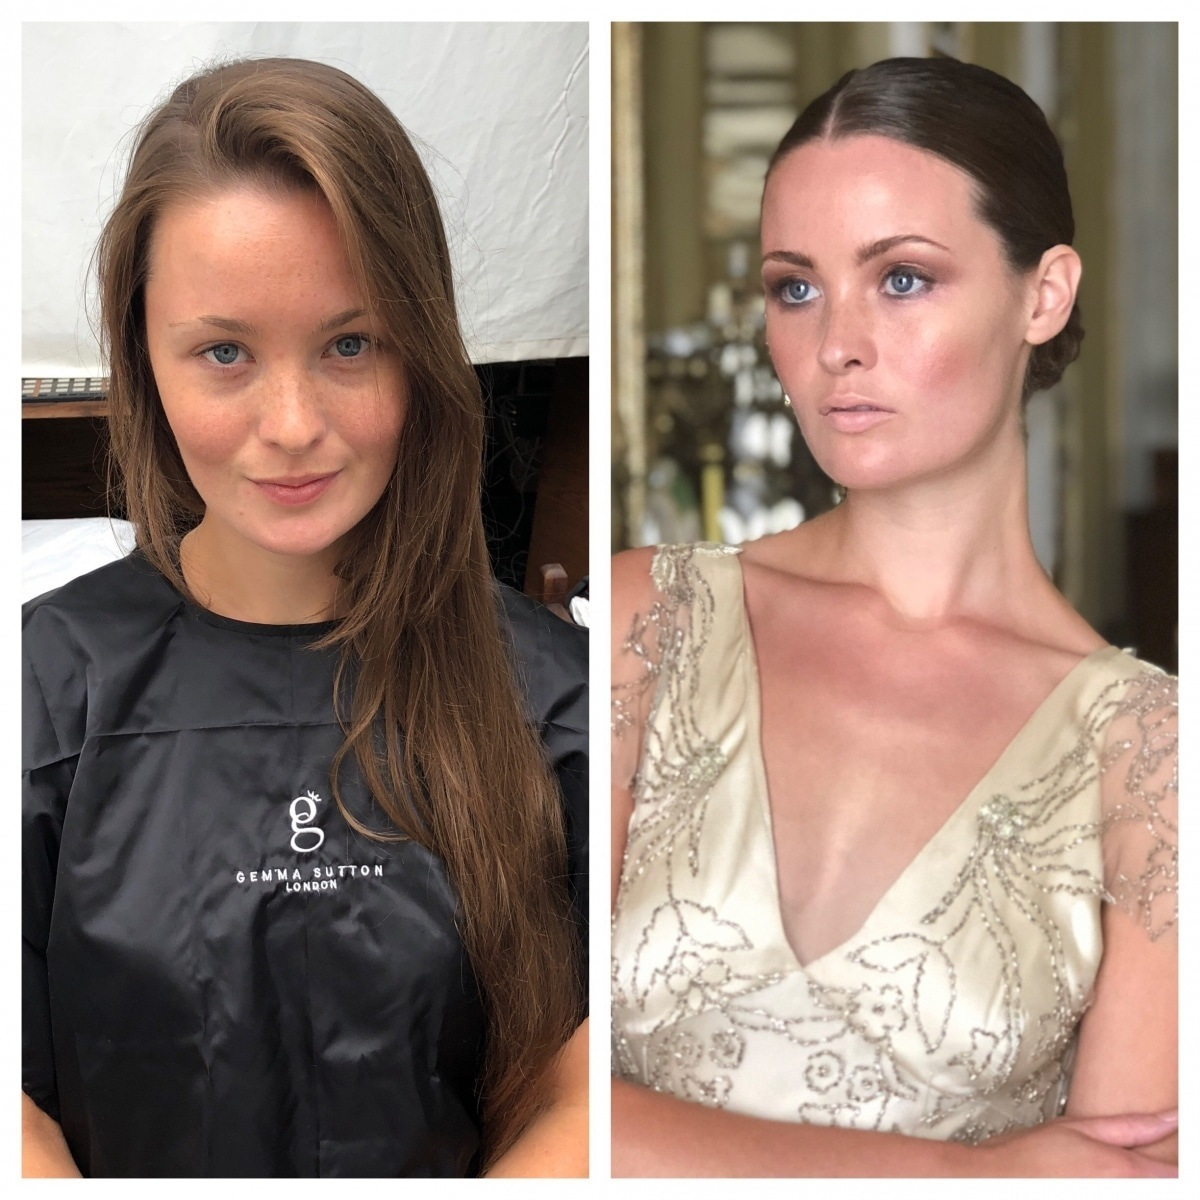 before and after makeup - Gemma Sutton